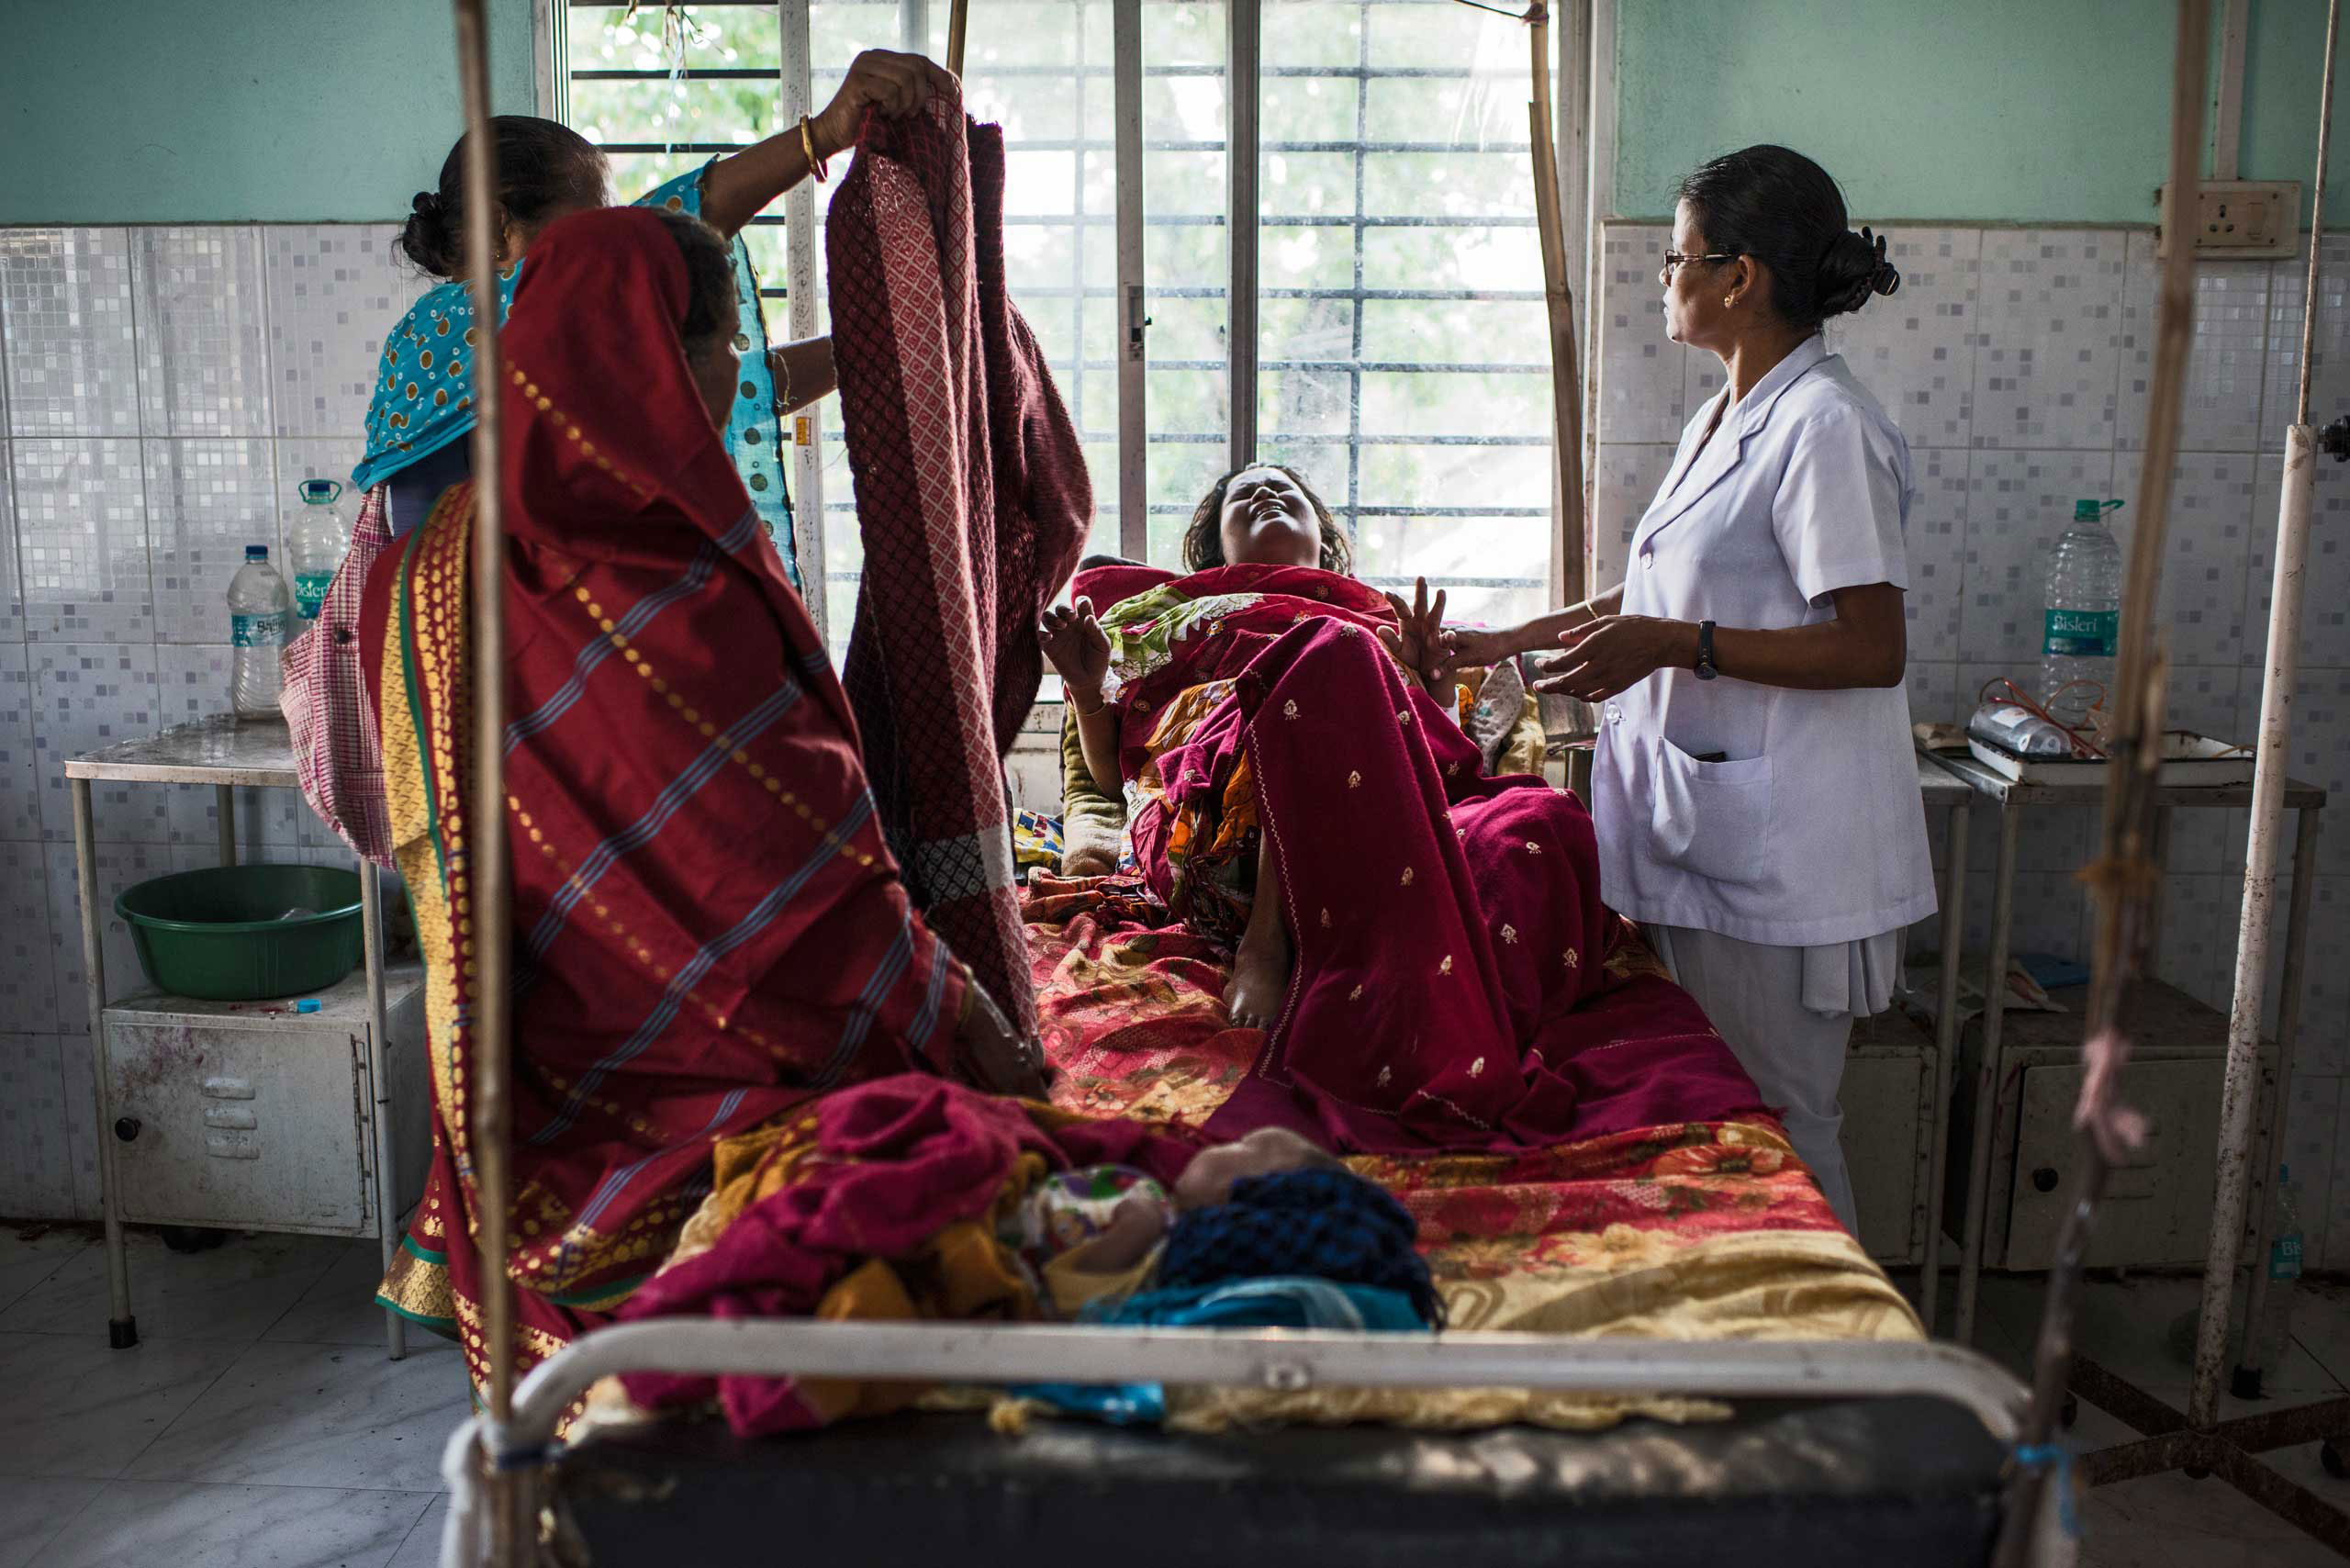 Nazreen Khatoon winces in pain as she lies gravely ill, suffering from severe postpartum anemia at the Tezpur Civil Hospital in Tezpur, Assam, India. April 2015.  Assam has the highest rate of women dying in chidbirth and from pregnancy-related causes in all of India, where roughly 50,000 women die annually in childbirth across the country.  Many families in Assam work on the tea plantations, where there is a high rate of pregnant and lactating women who are severely anemic due to poor diets and little to no prenatal care, leading to a high number of pregnancy complications.